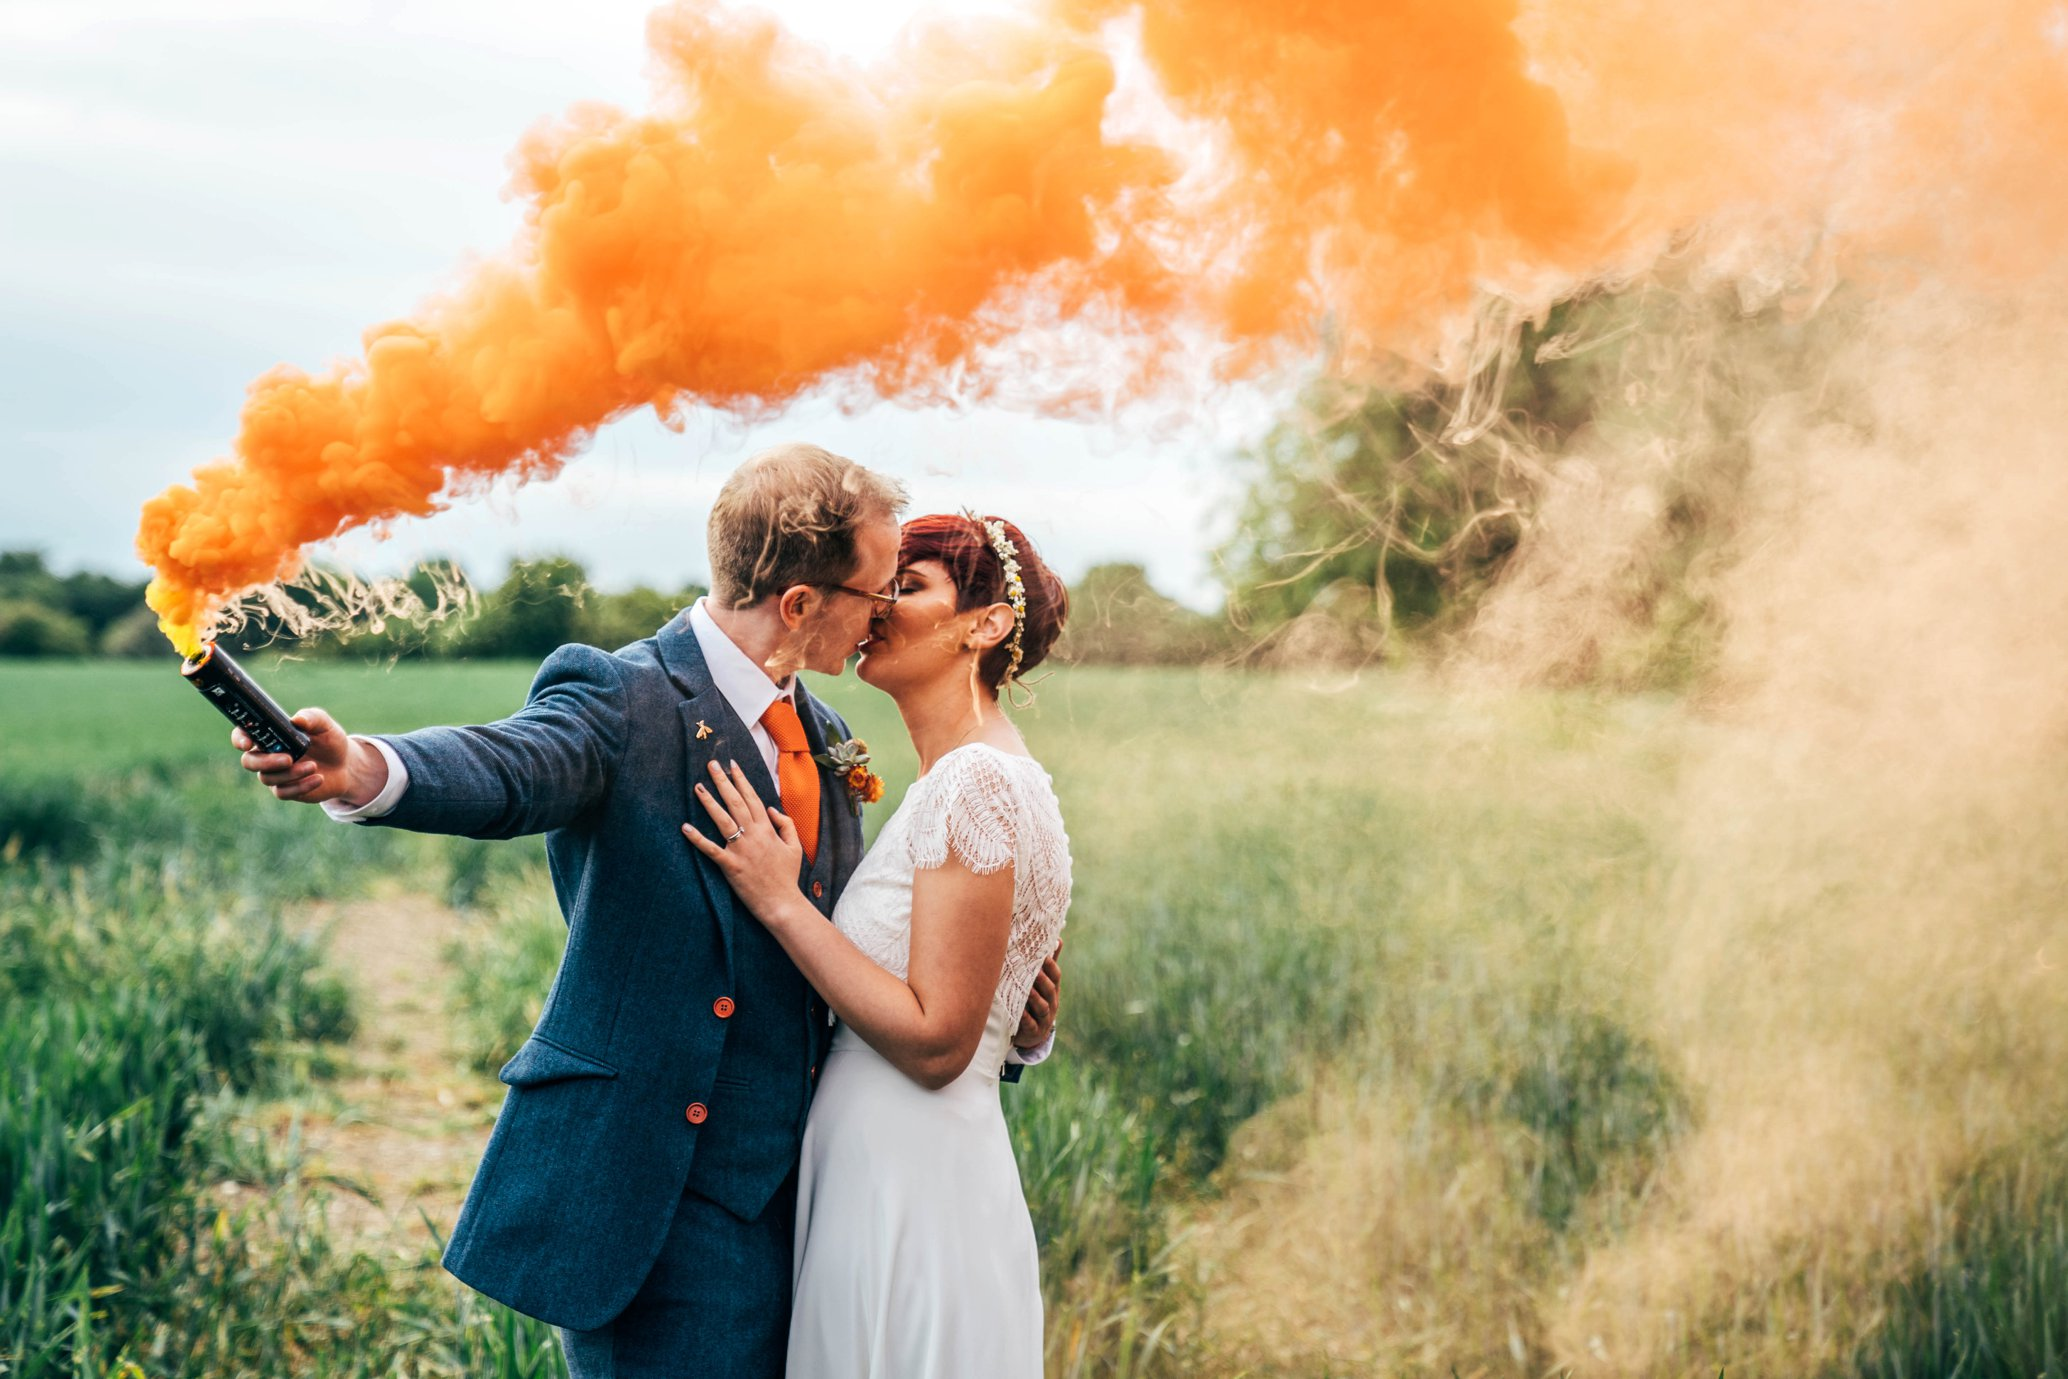 DIY Village Hall Outdoor Wedding Flower Arc Camper Pizza Van Orange smoke bombs dip dye wedding dress Essex Documentary Wedding Photographer